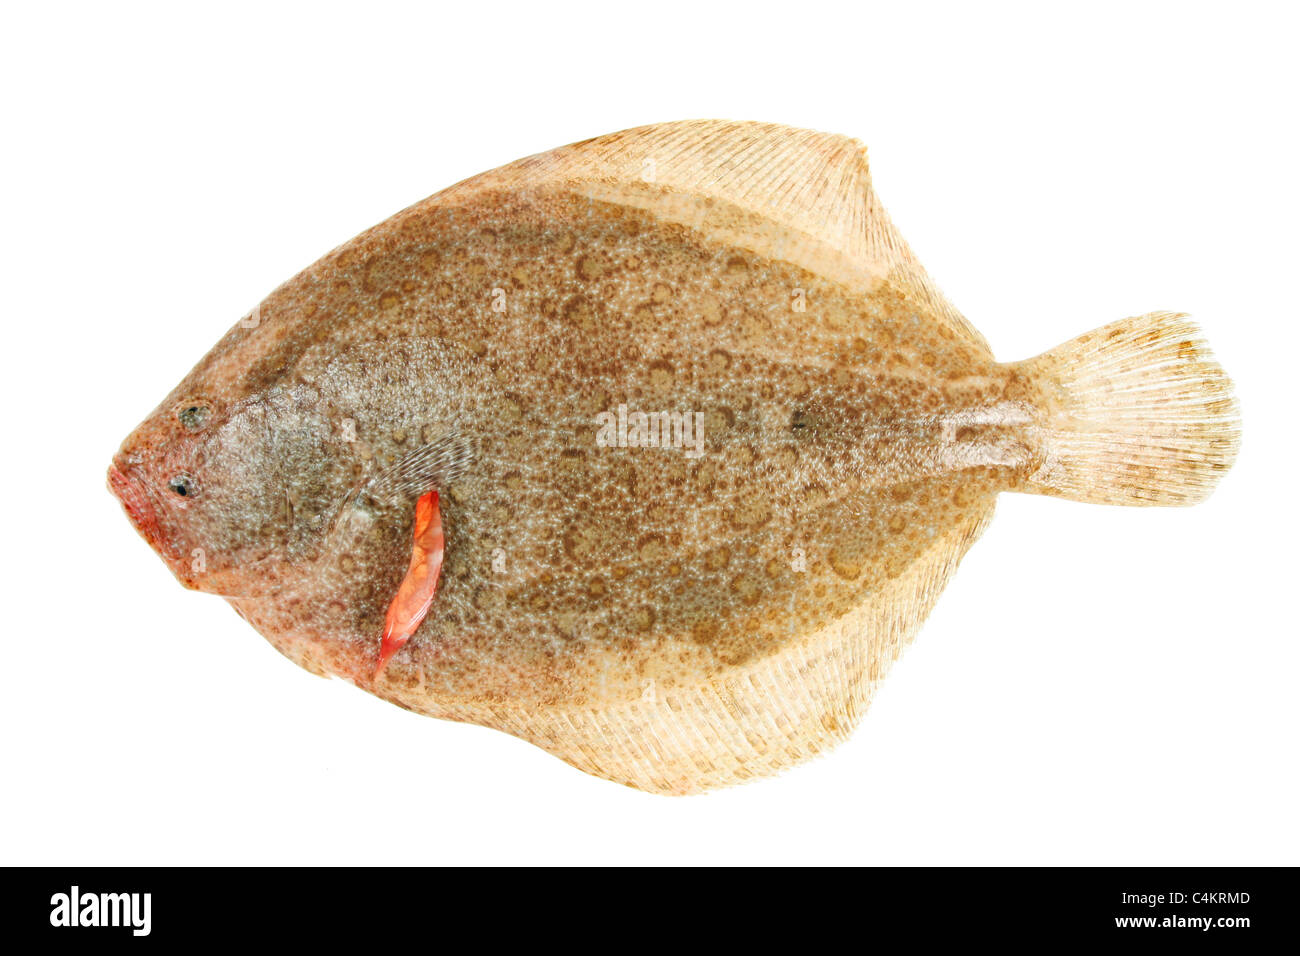 Brill flatfish isolated on a white background - Stock Image